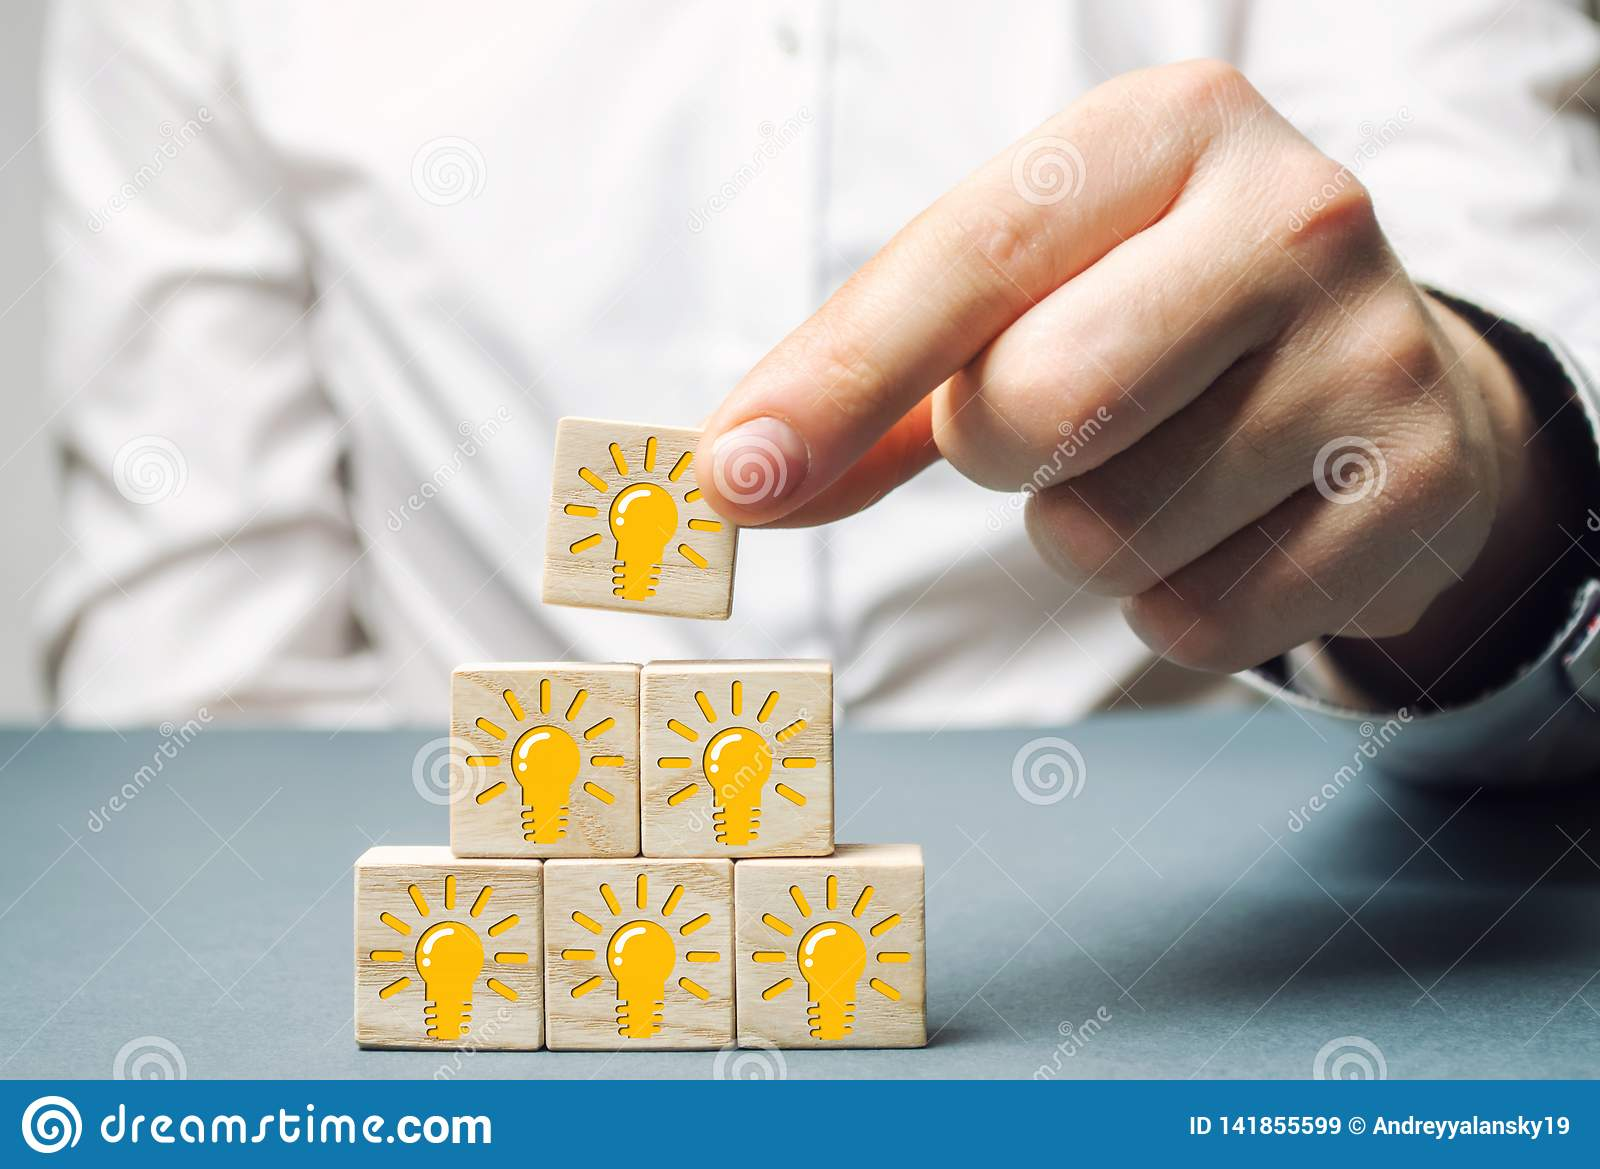 A businessman puts wooden blocks with a light bulb of an idea or inspiration. Generation of innovative business ideas. Creative